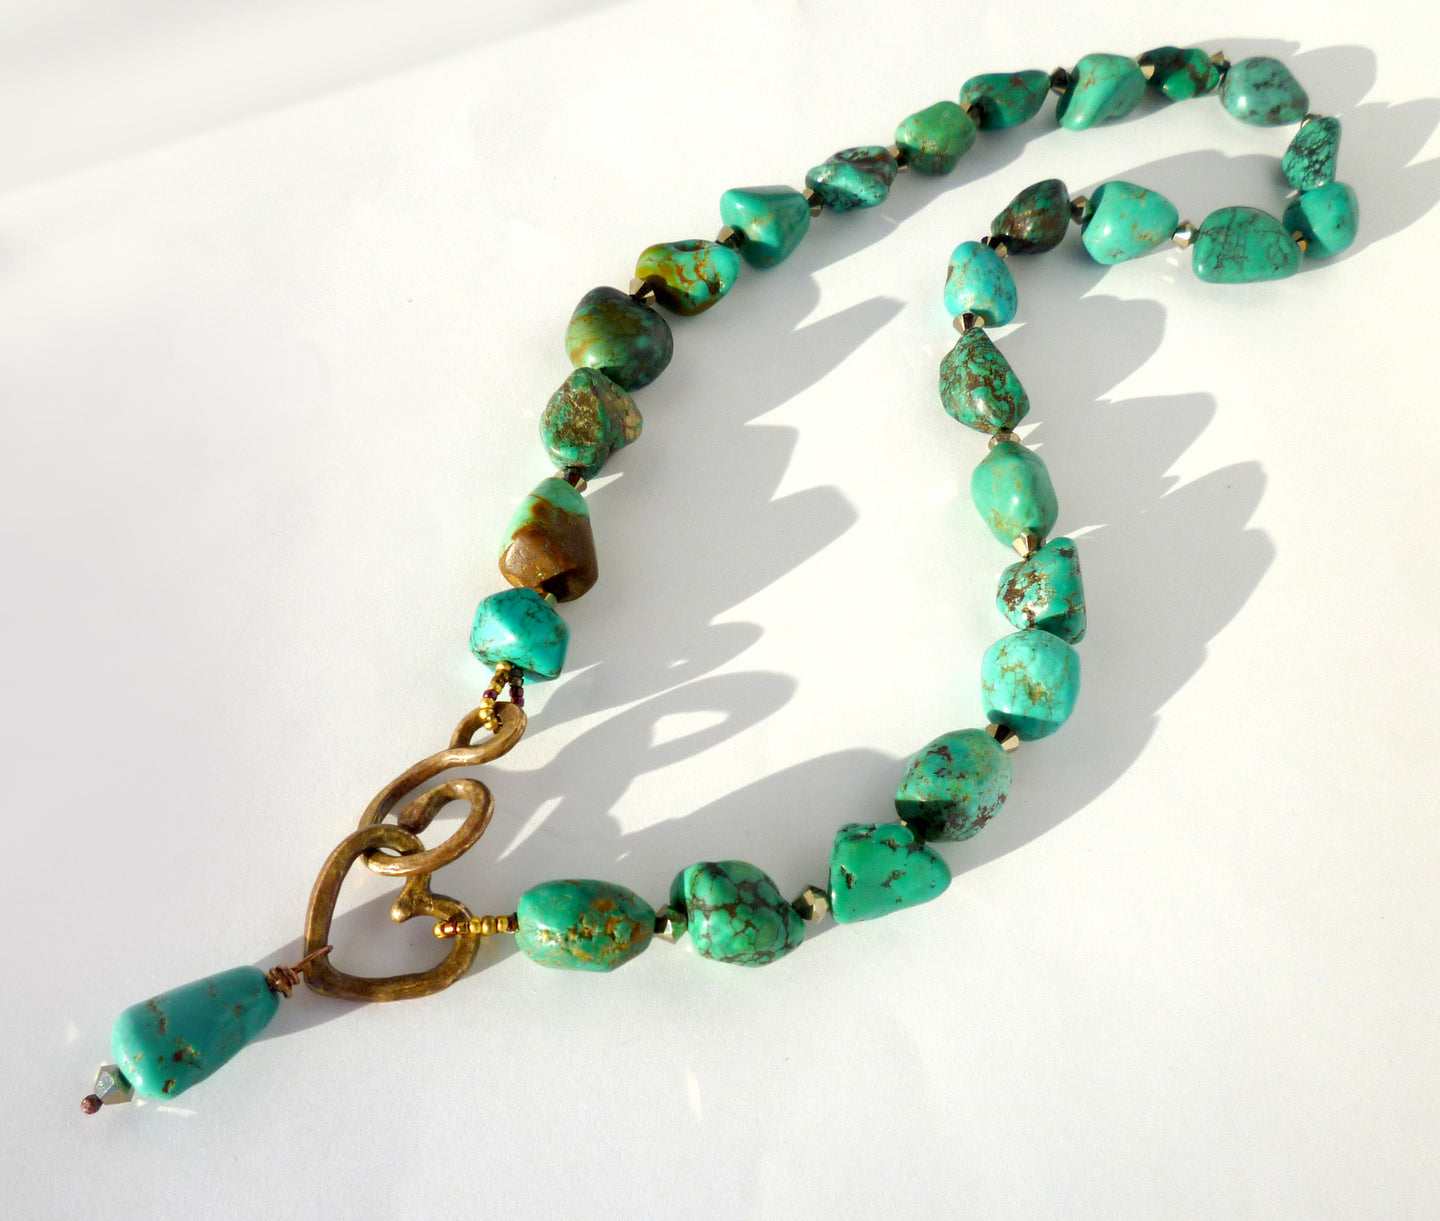 Turquoise & Swarovski Crystal Necklace with Ancient Bronze Maria-Tina Signature Clasp